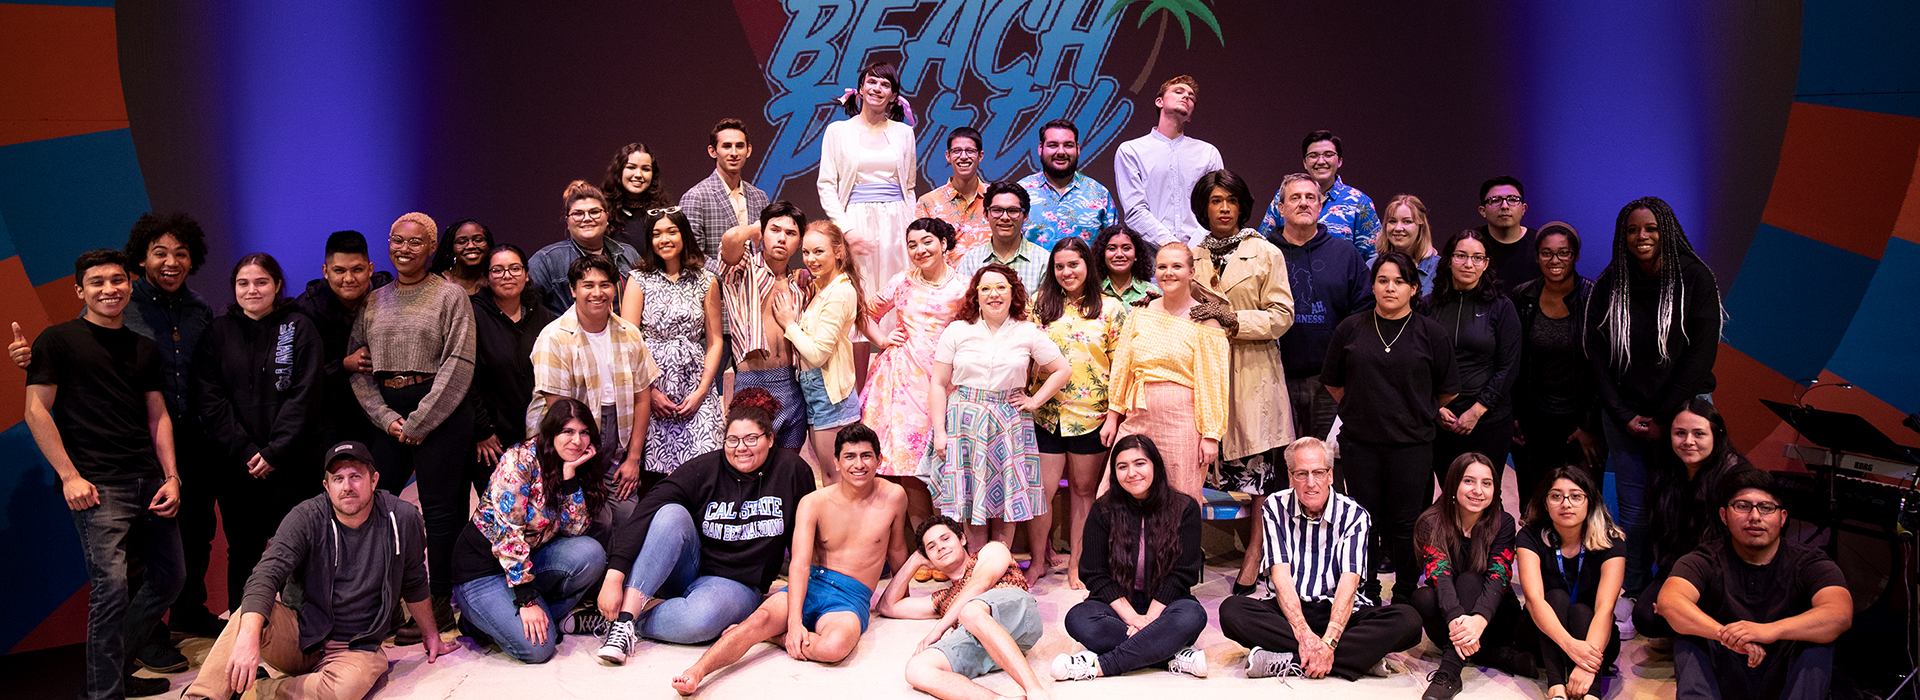 CSUSB's Department of Theatre Arts kicks off season with 'Psycho Beach Party'